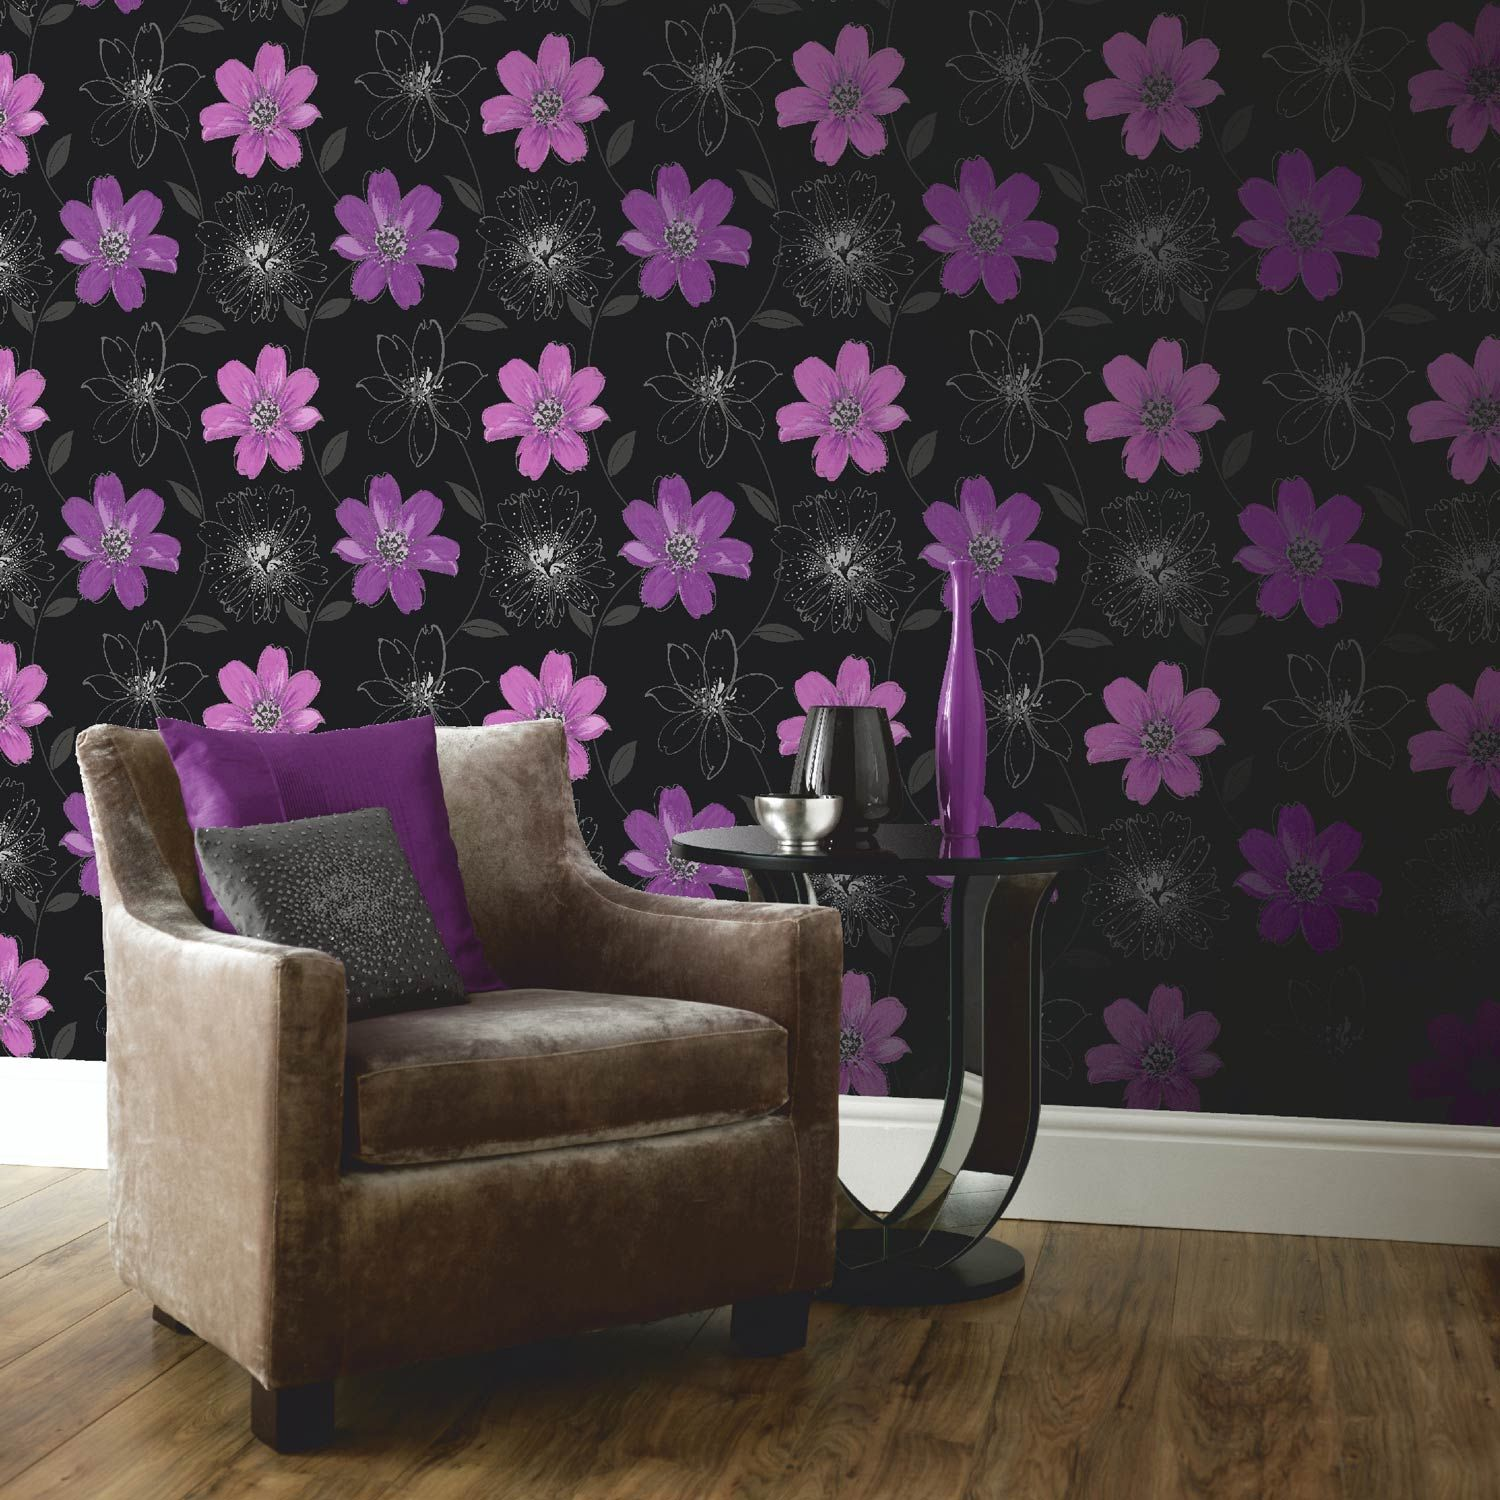 Pink And Black Bedroom Wallpaper Buy The Samba Black And Purple Floral Motif Wallpaper By Arthouse